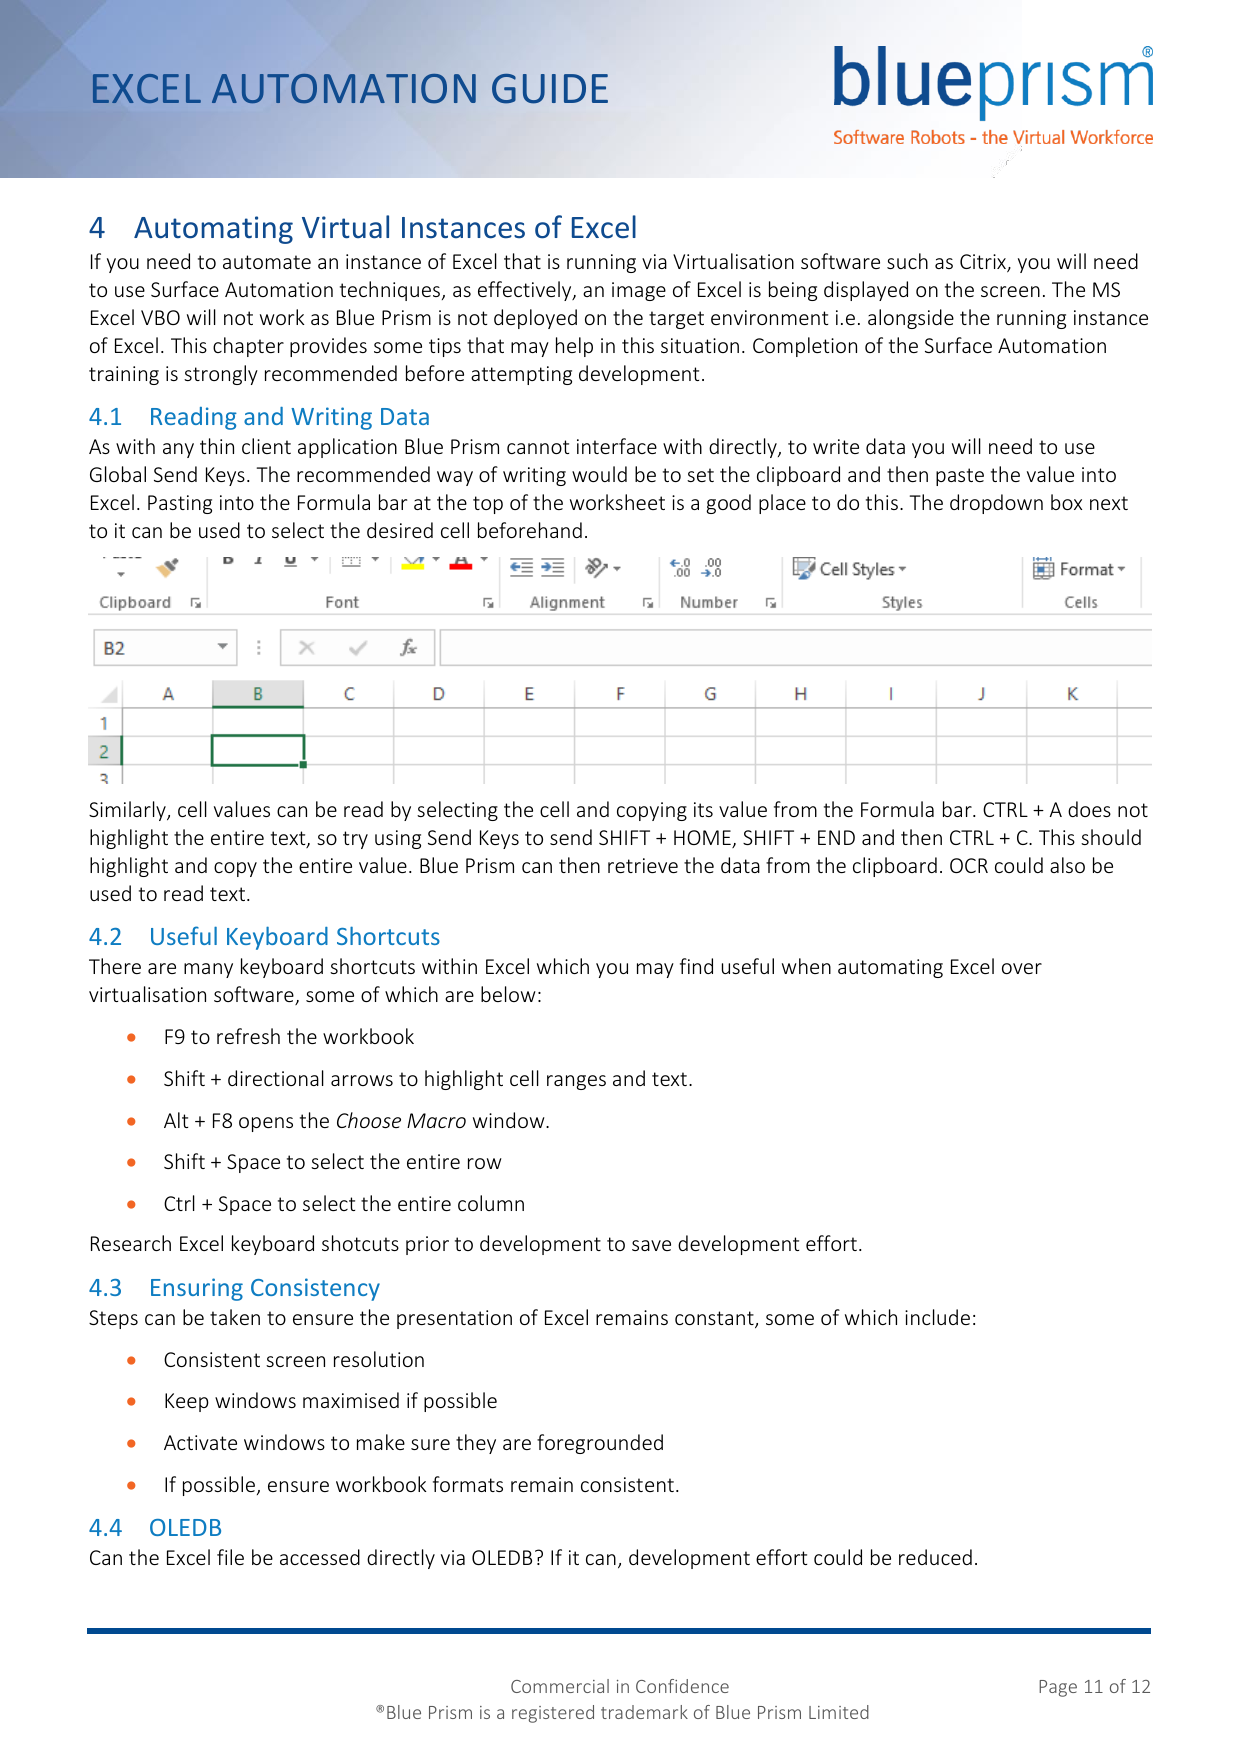 Page 11 of 12 - Blue Prism Excel Automation Guide